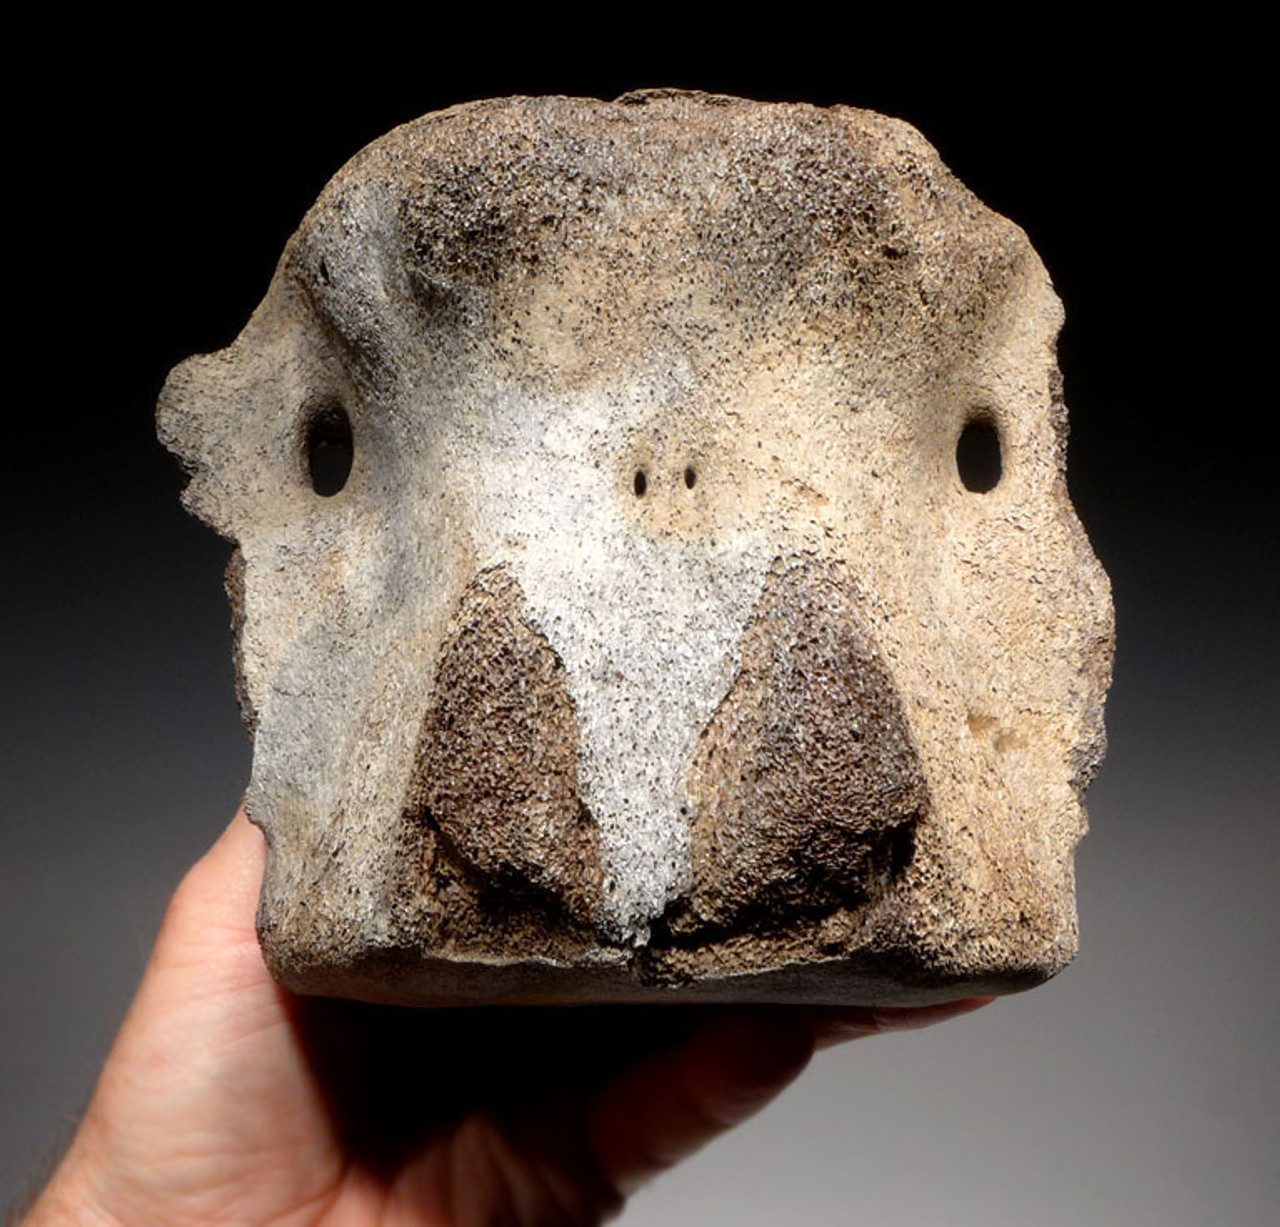 WH022 - PREHISTORIC FOSSIL WHALE VERTEBRA FROM THE FAMOUS LEE CREEK MINES